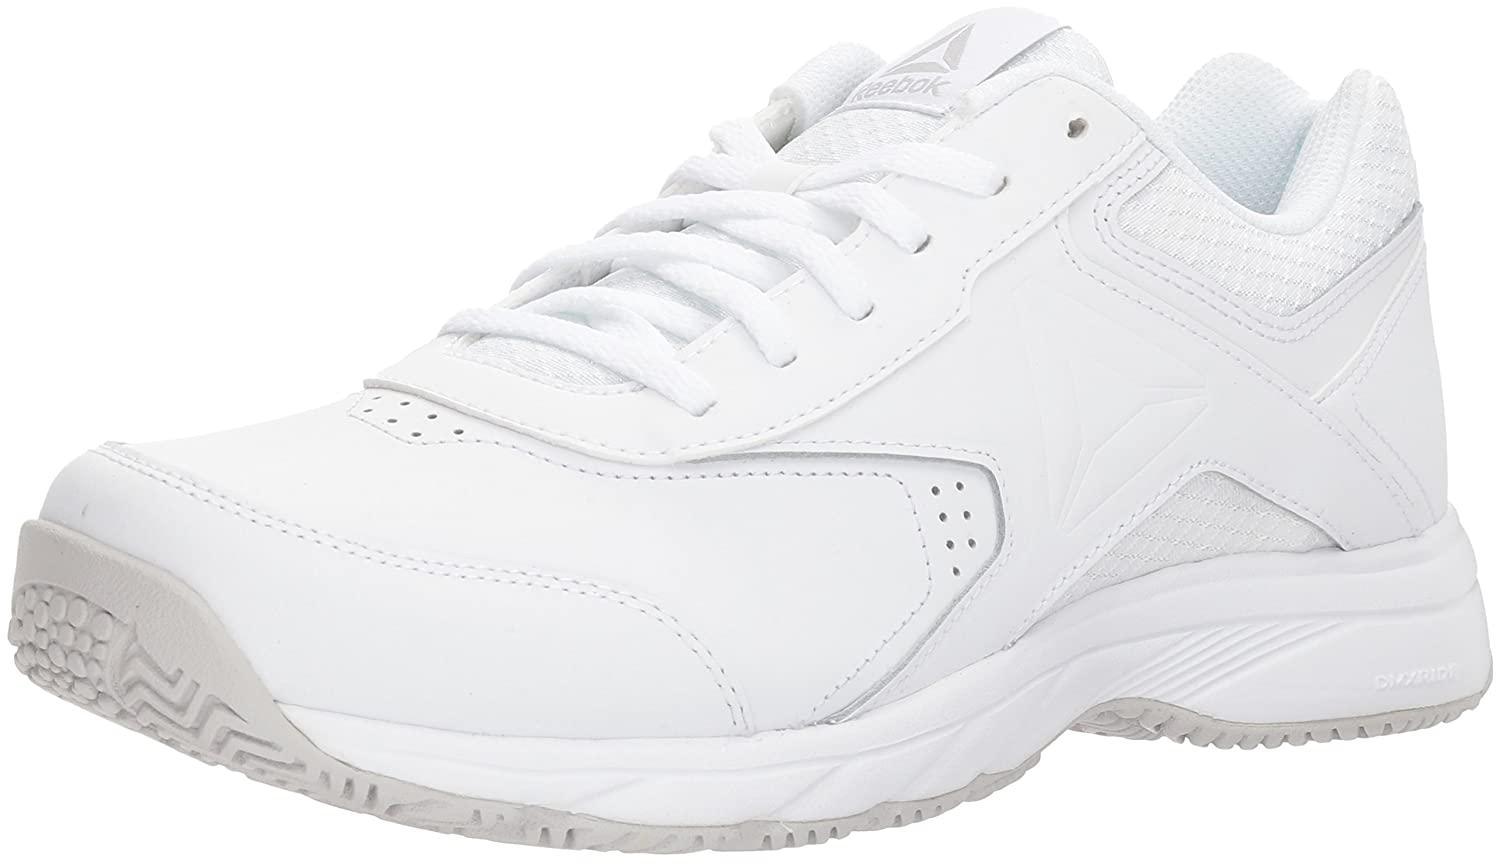 Reebok Women's Work N Cushion 3.0 Wide D Sneaker B071LTHF7B 8 B(M) US|White/Steel - Wide D